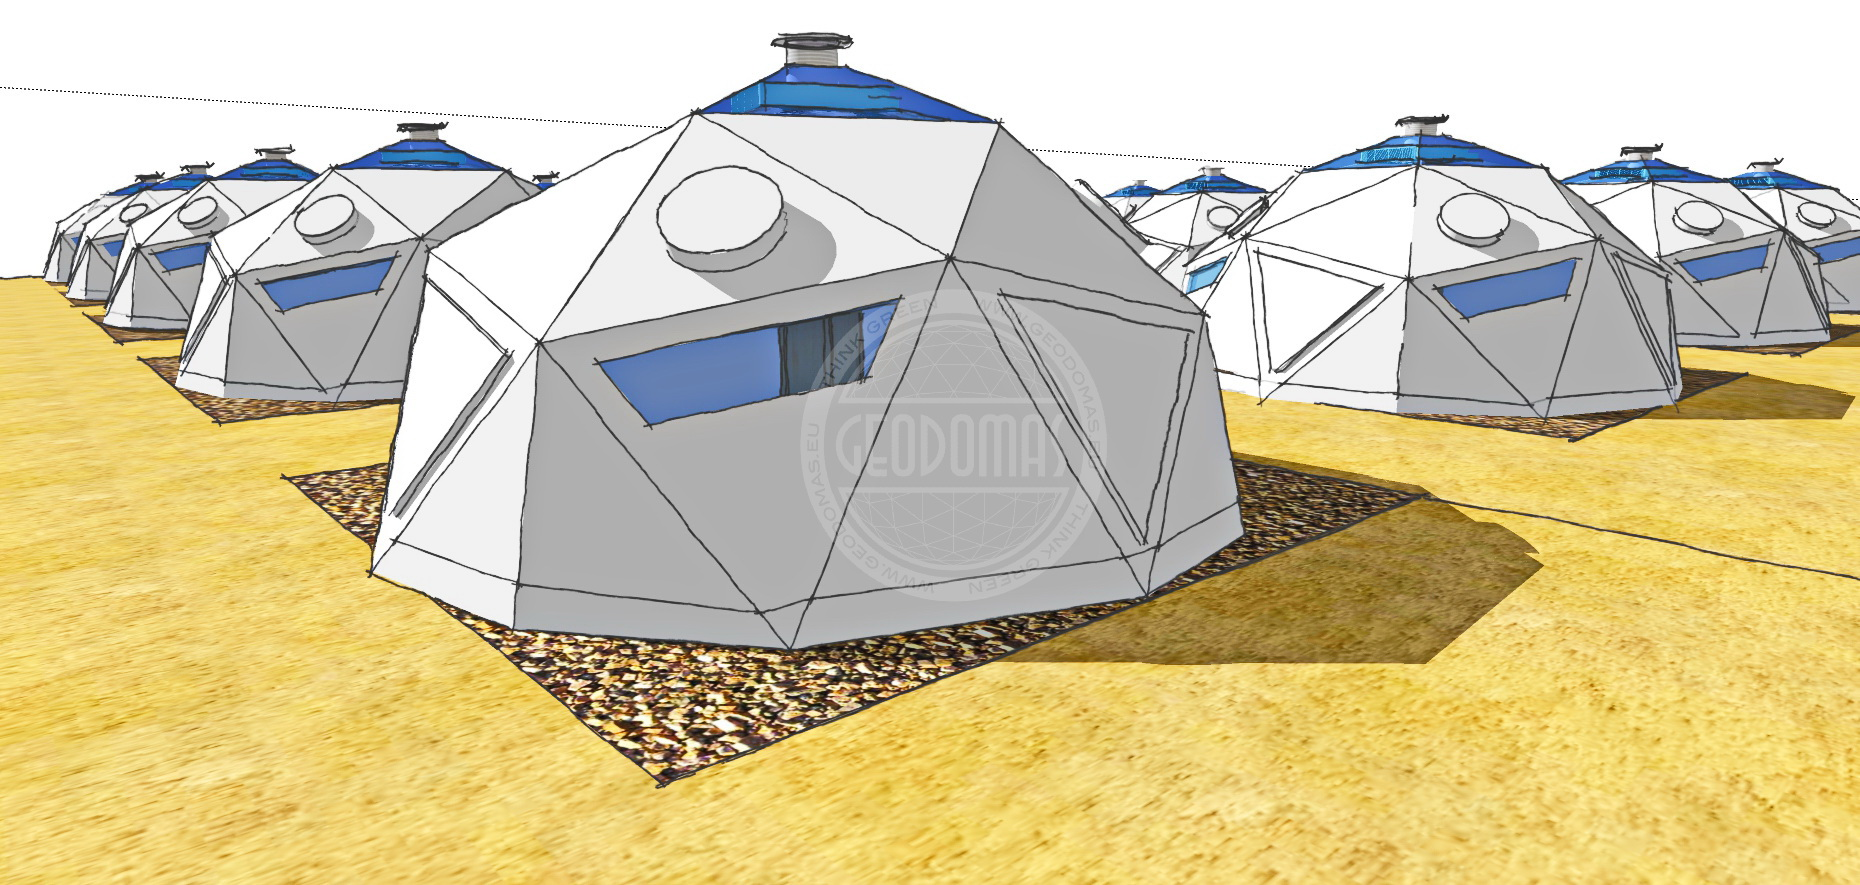 Domes for Temporary Camp Facilities Ø6m x 4person